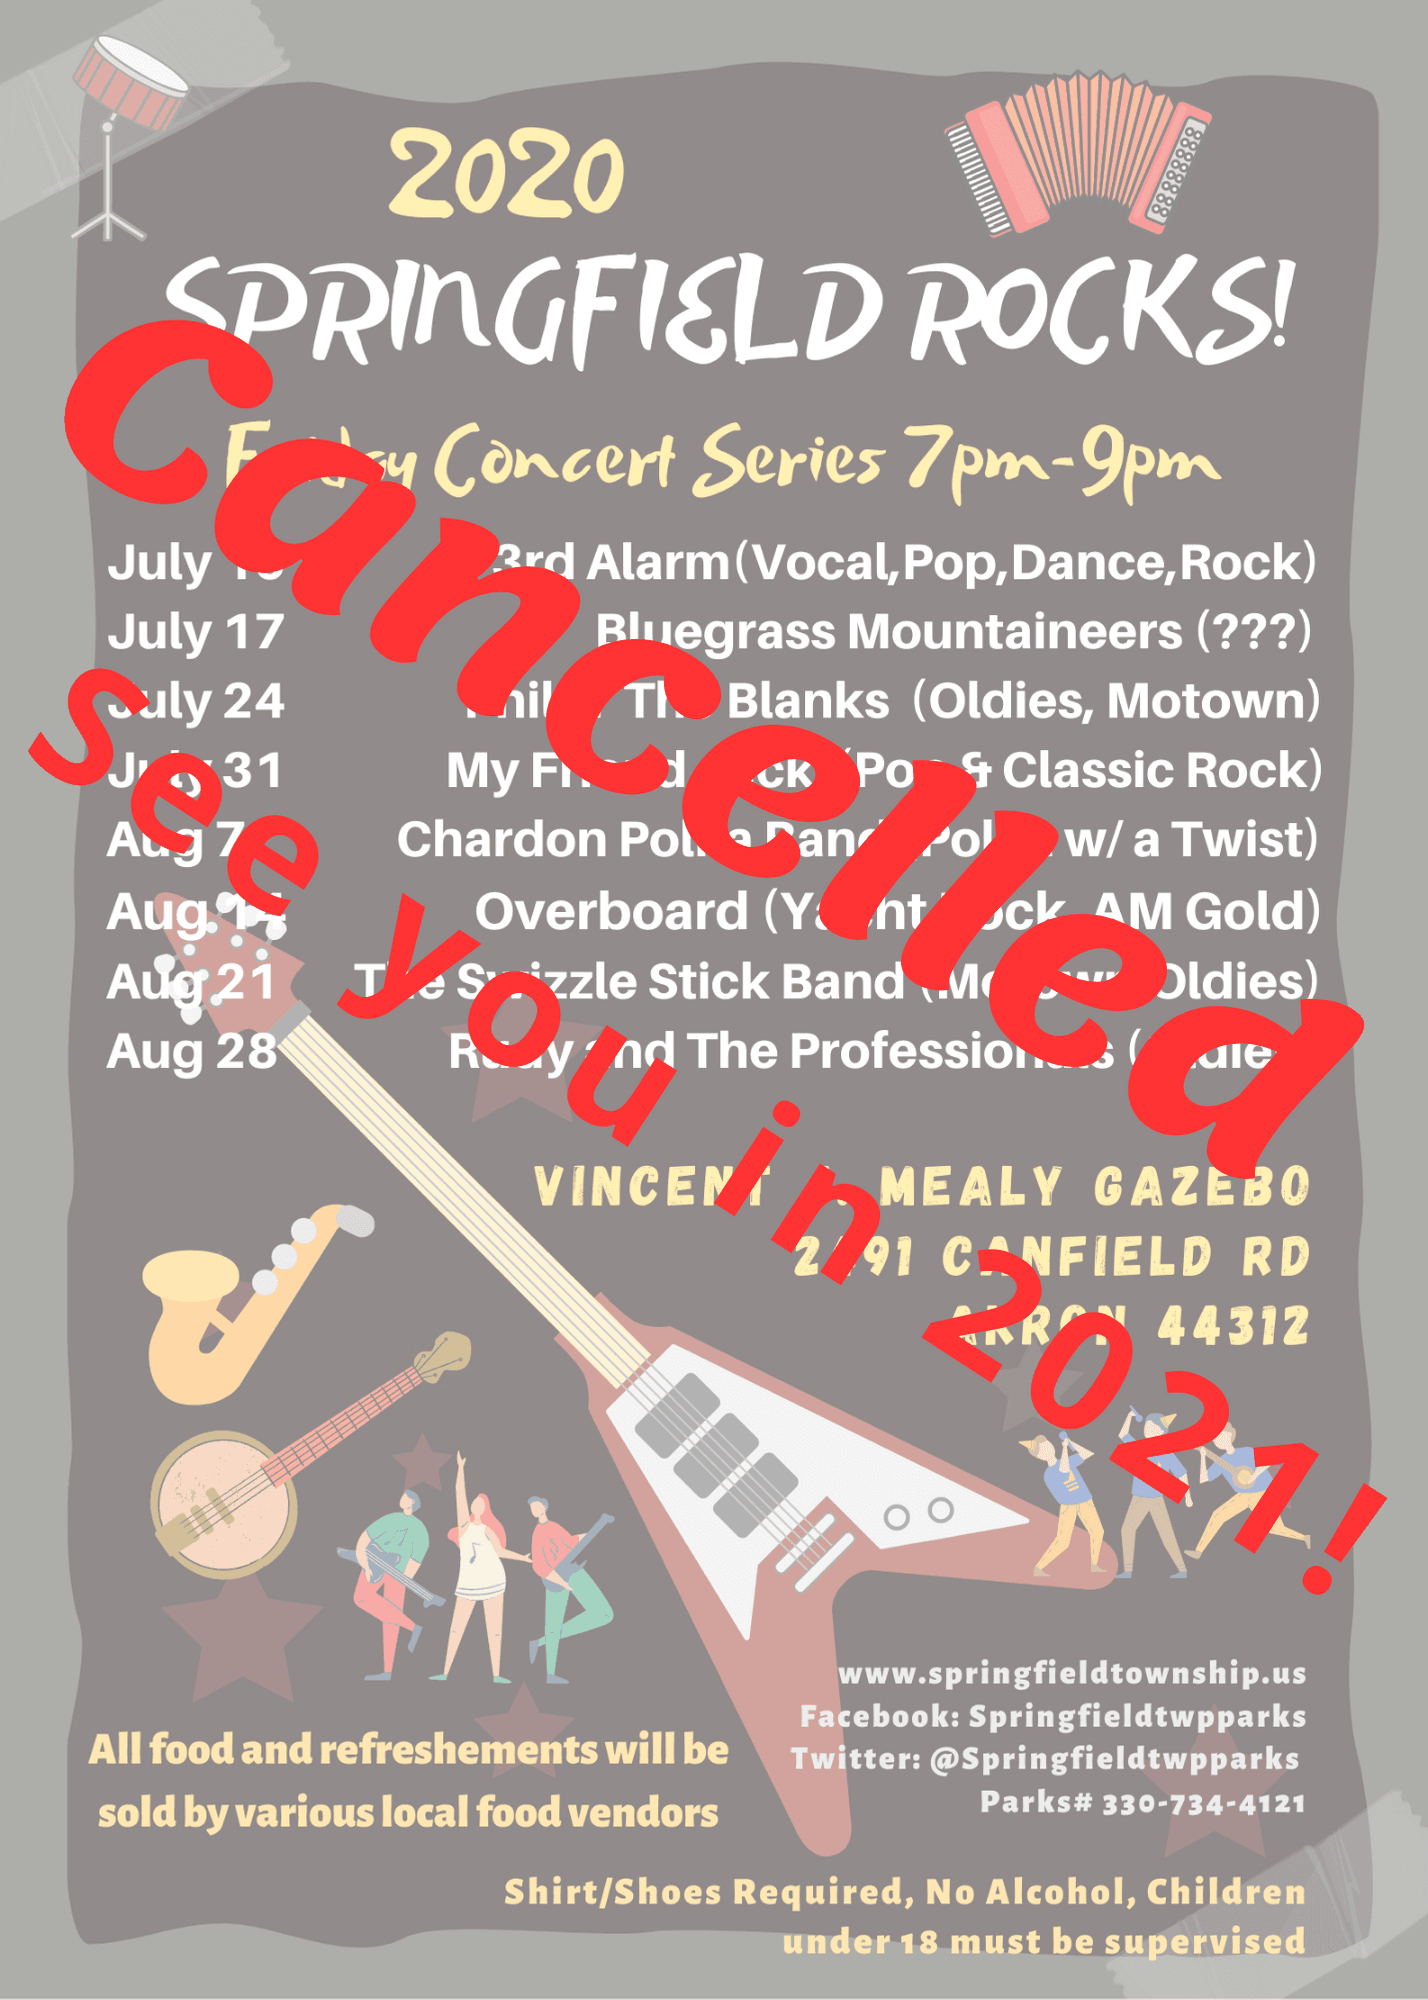 Cancelled Concerts for 2020